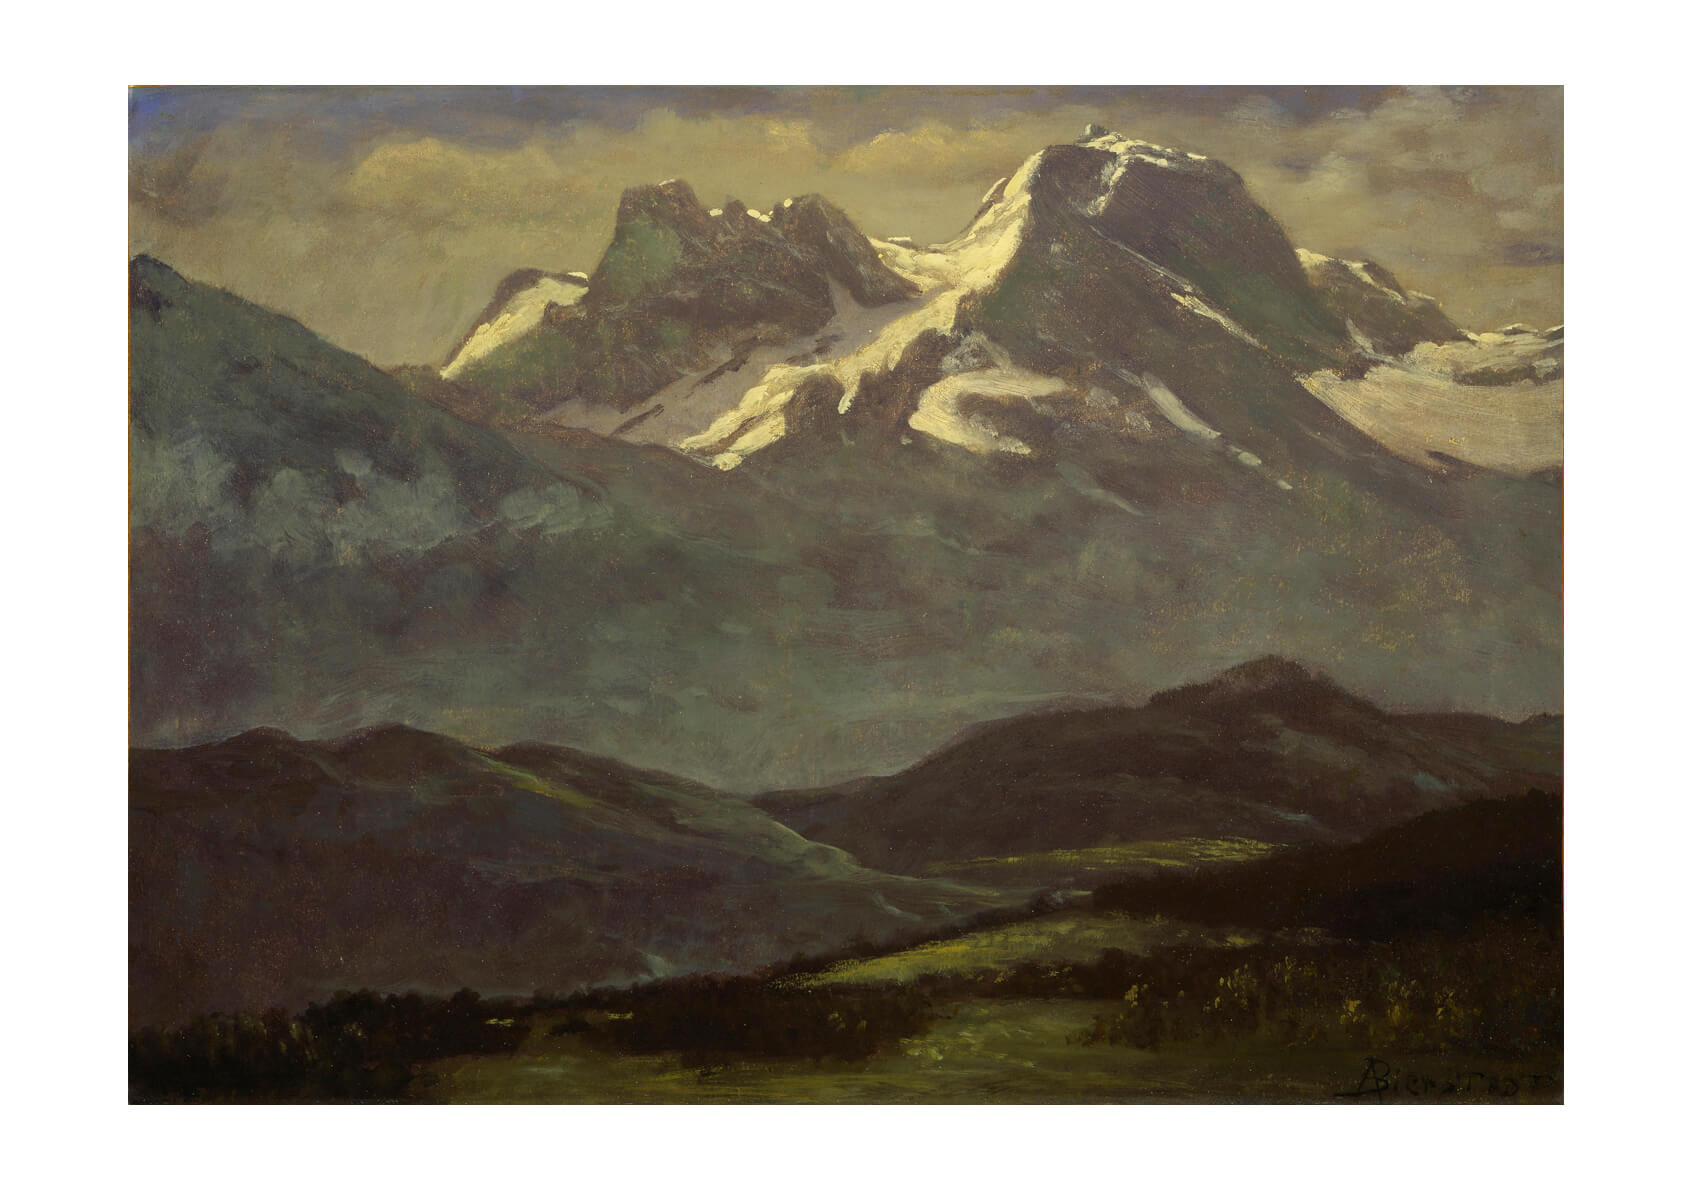 Albert Bierstadt - Summer Snow on the Peaks or Snow Capped Mountains